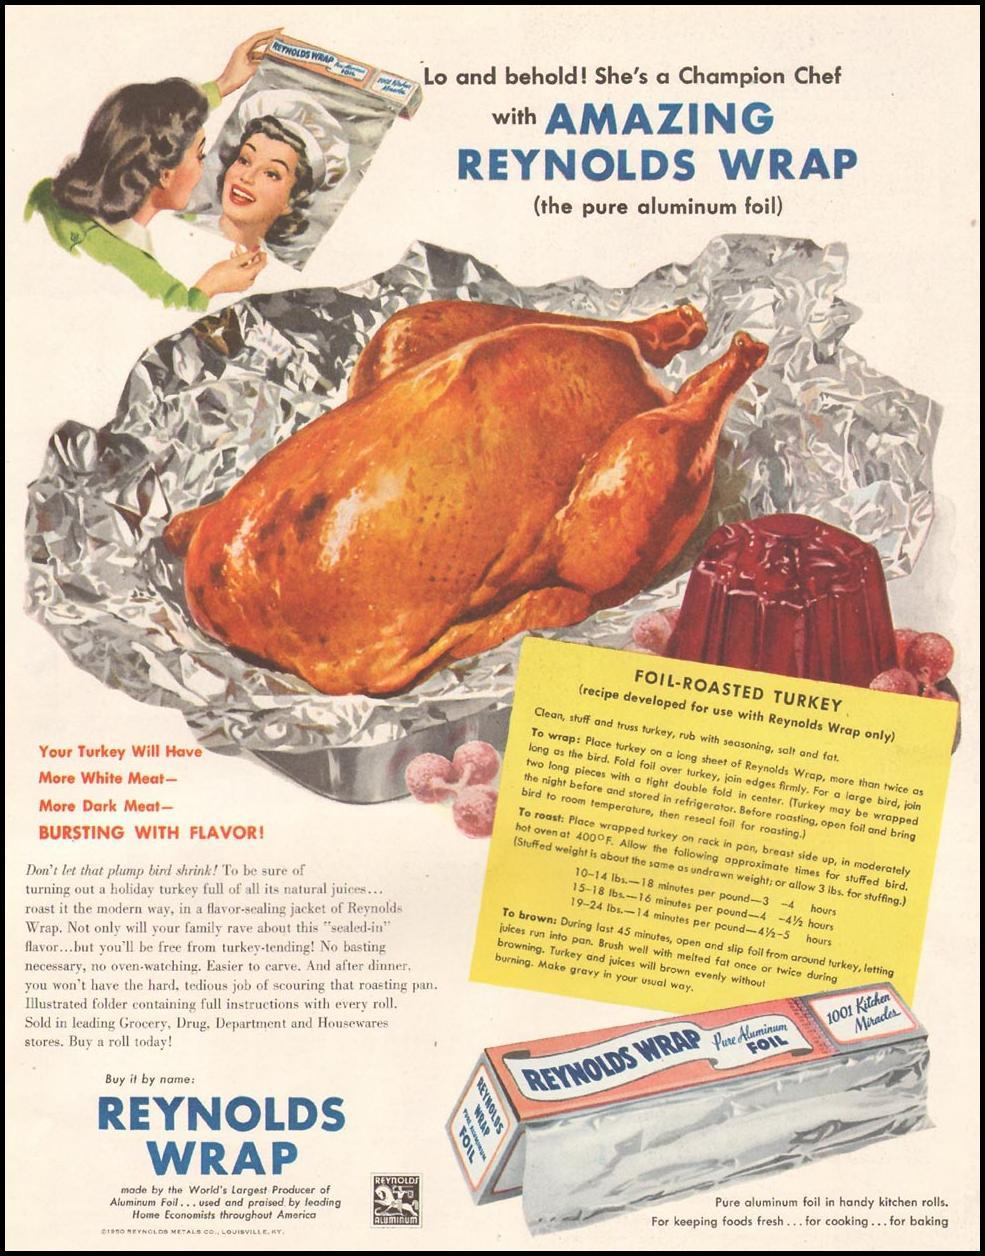 REYNOLDS WRAP ALUMINUM FOIL LADIES' HOME JOURNAL 11/01/1950